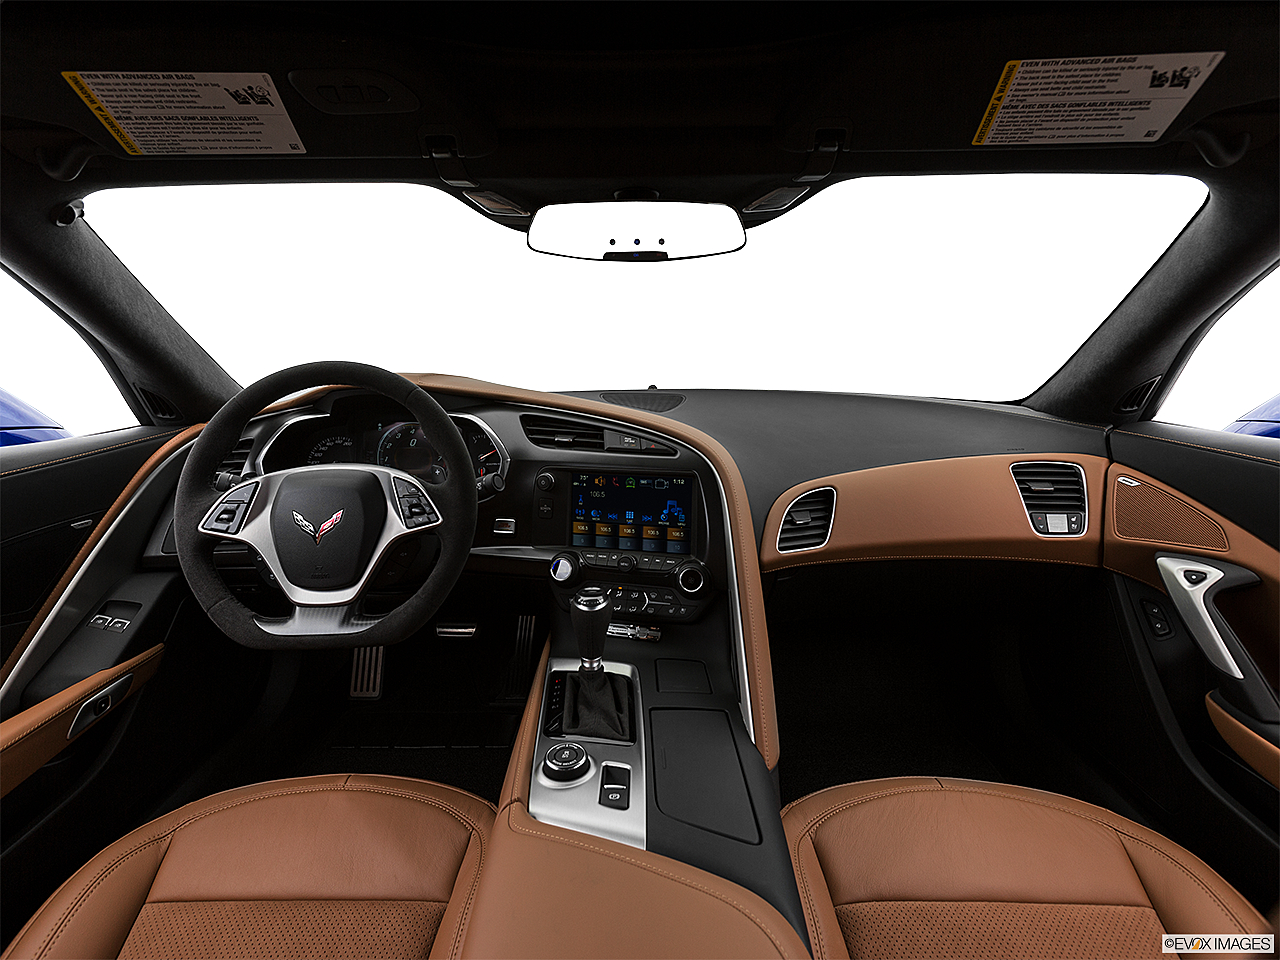 2019 Chevrolet Corvette Grand Sport 3LT, centered wide dash shot